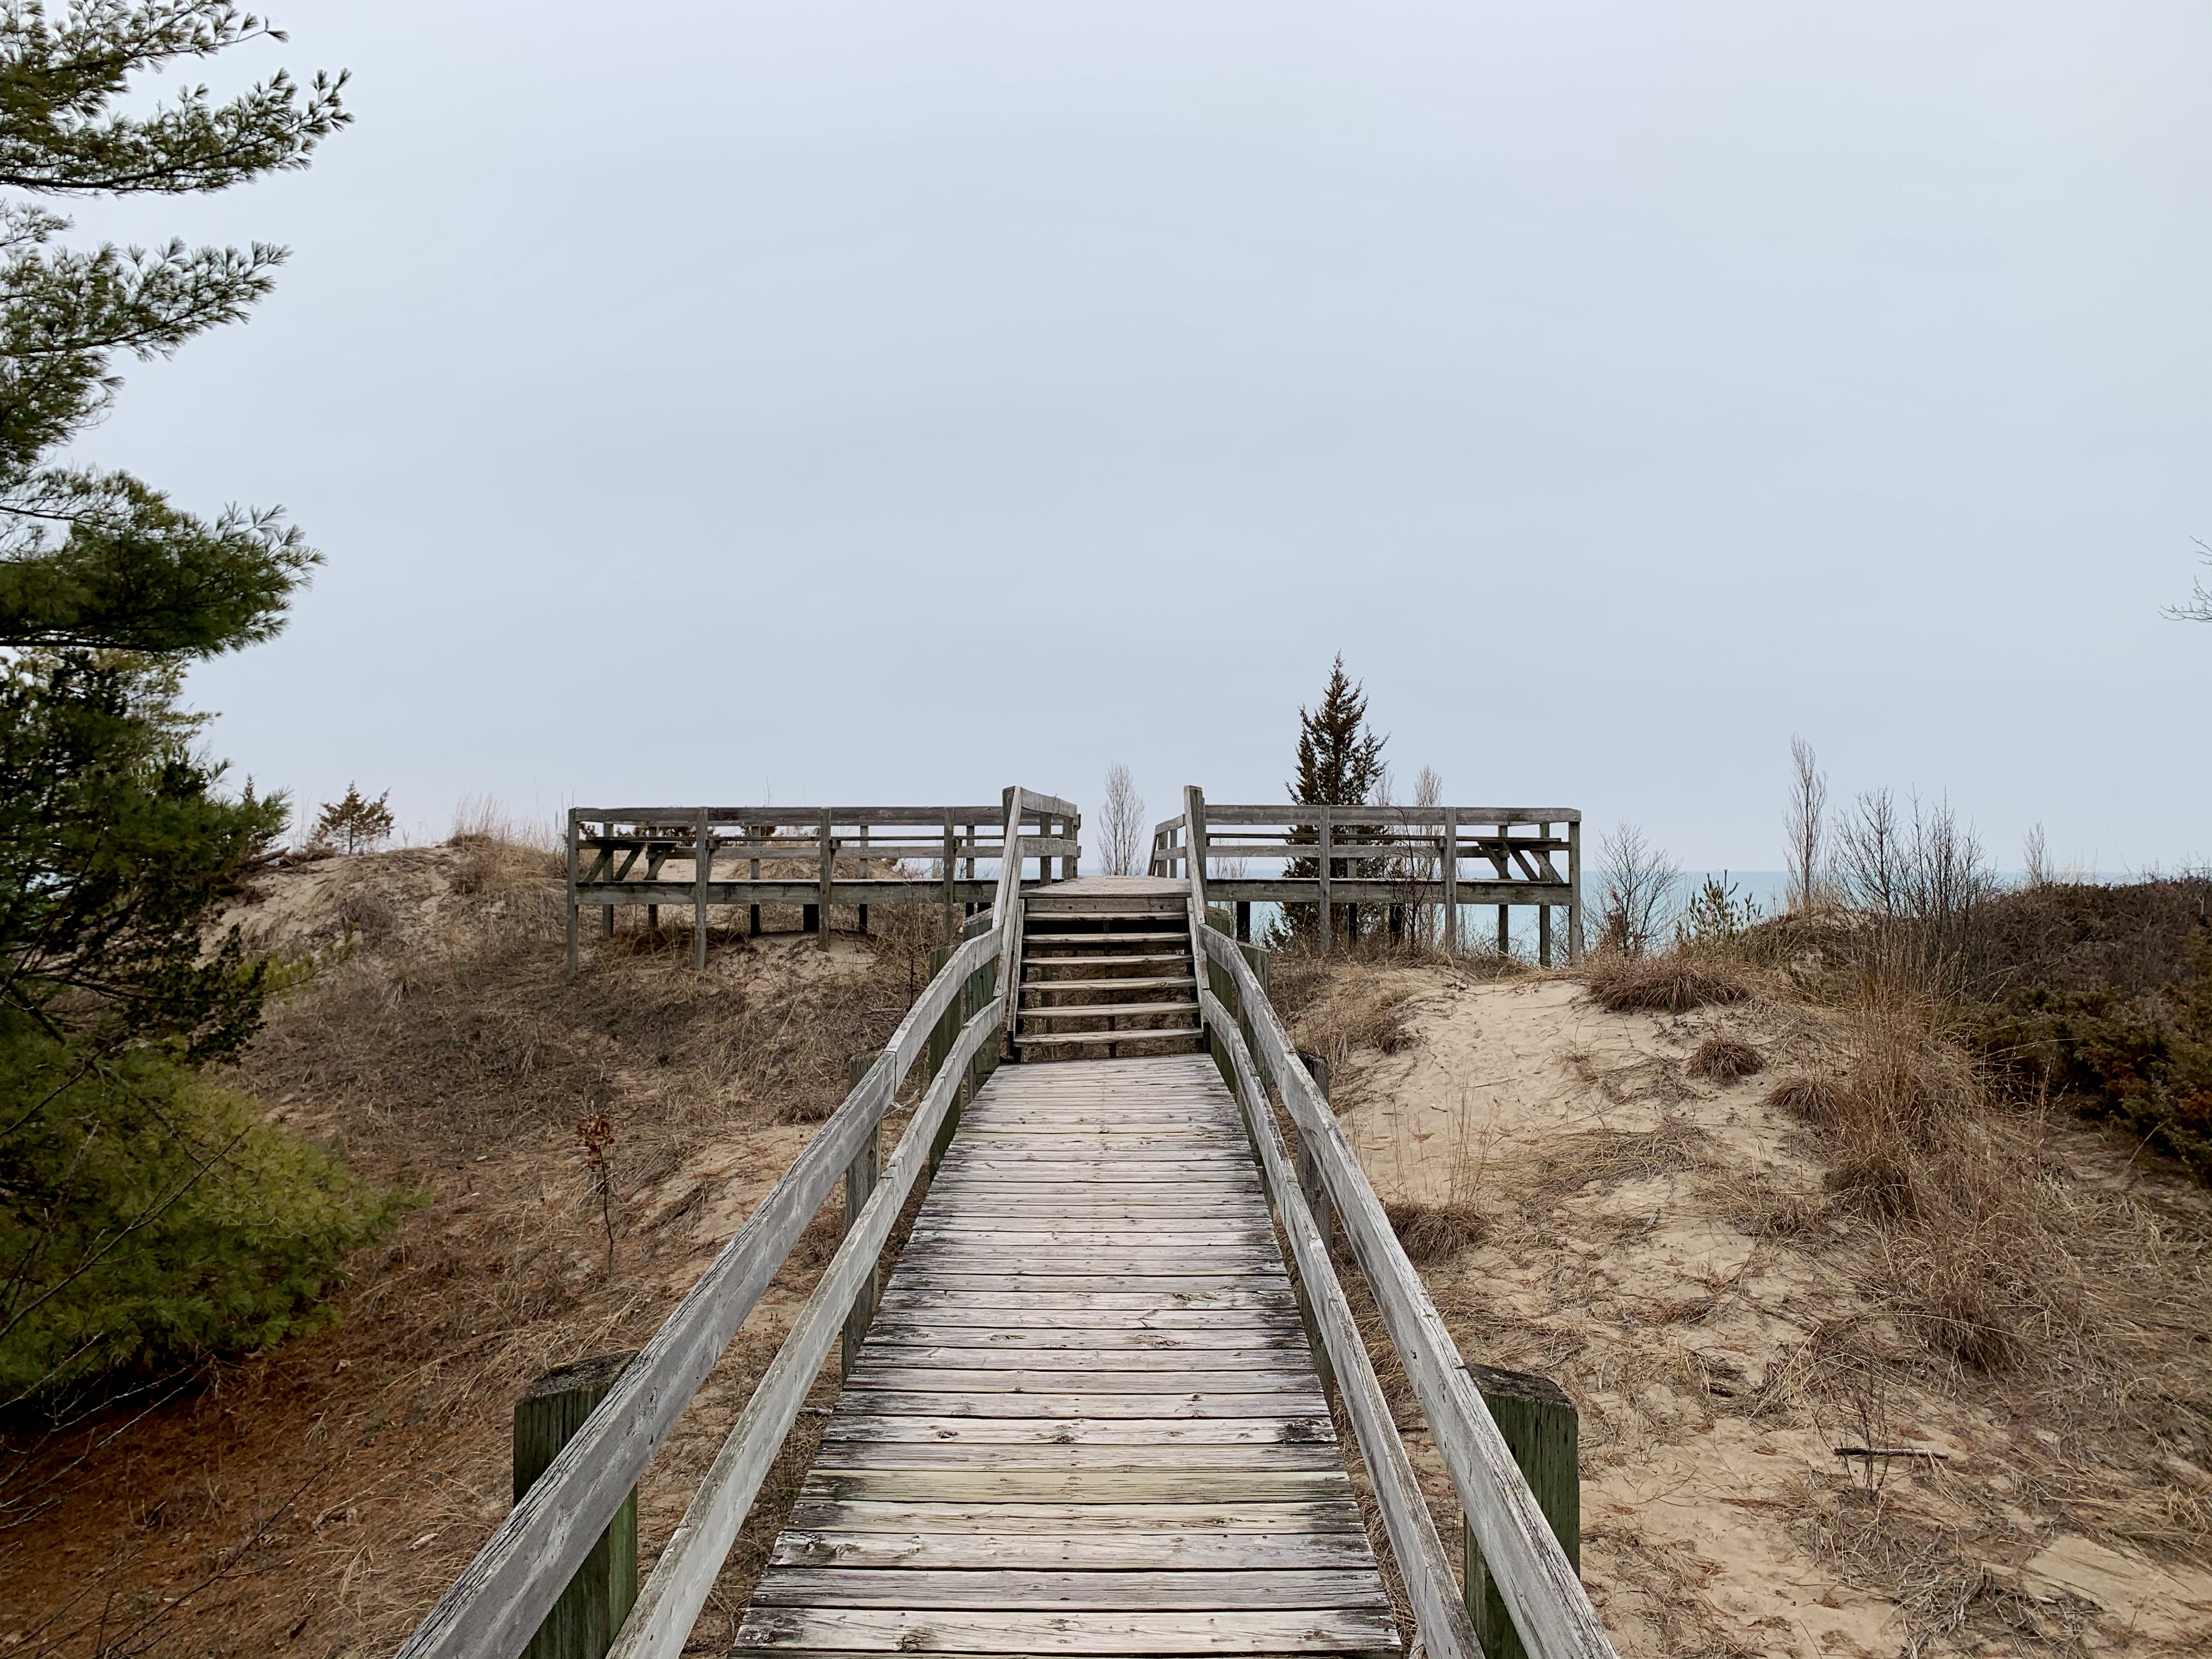 boardwalk over dunes with water in the distance